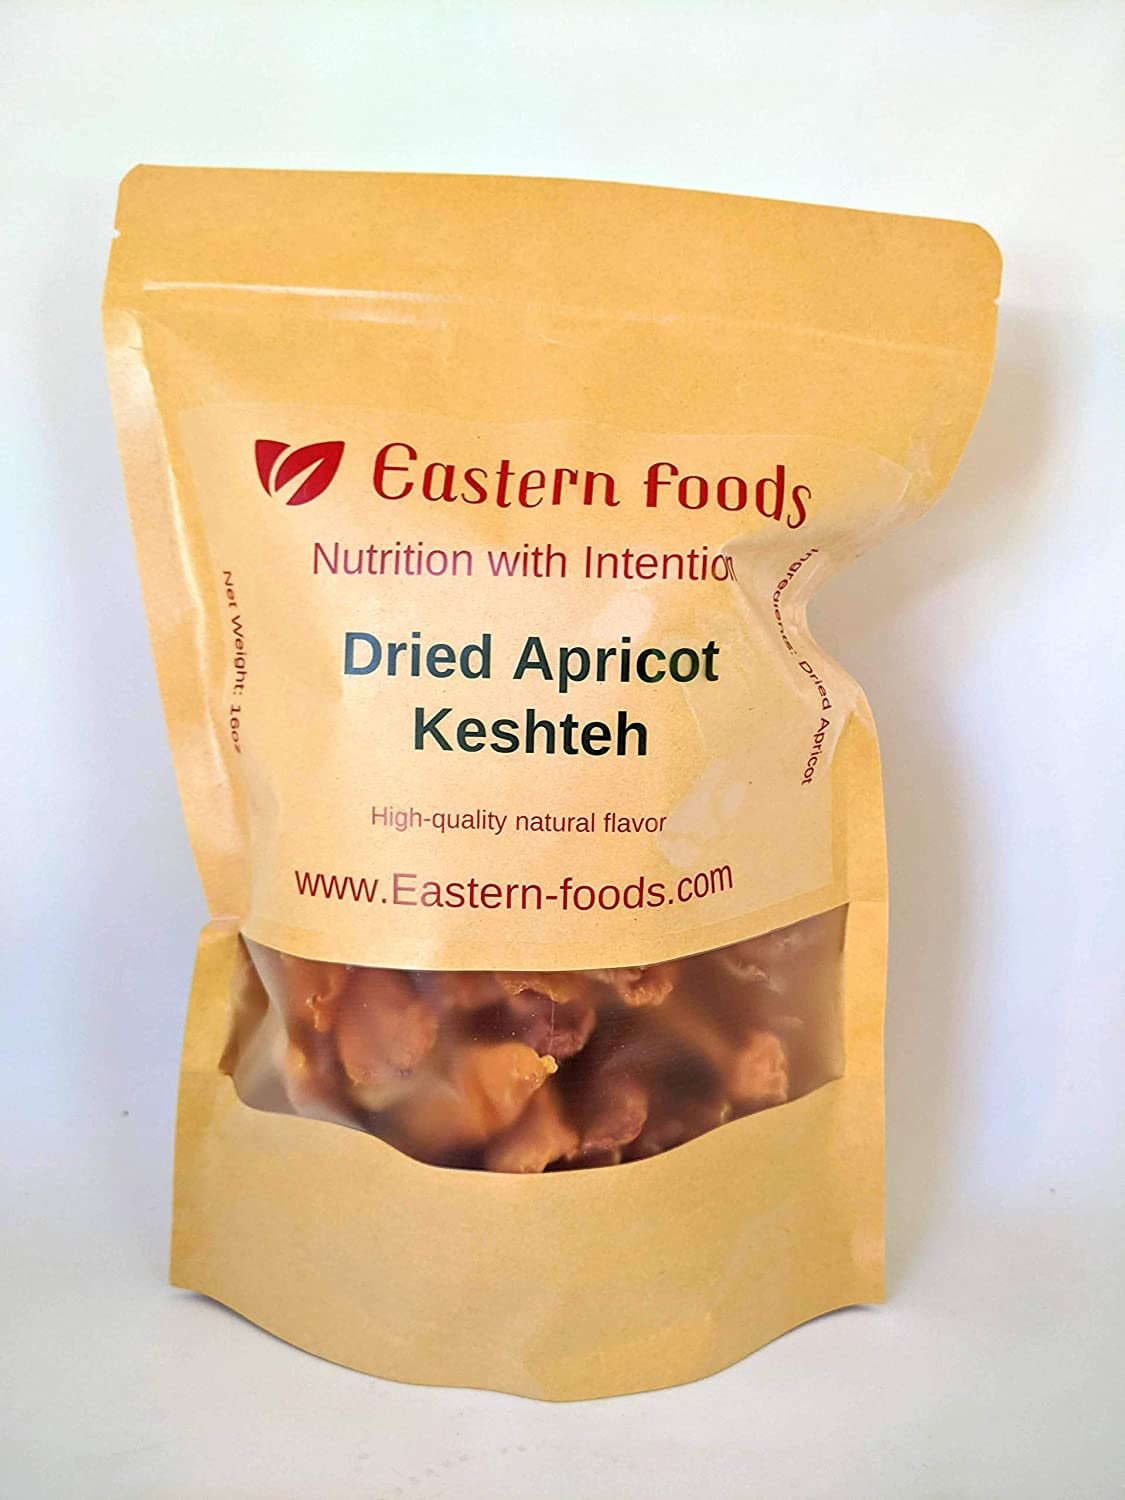 It is very popular Eastern Foods Choice Dried Apricot lb Keshteh 1